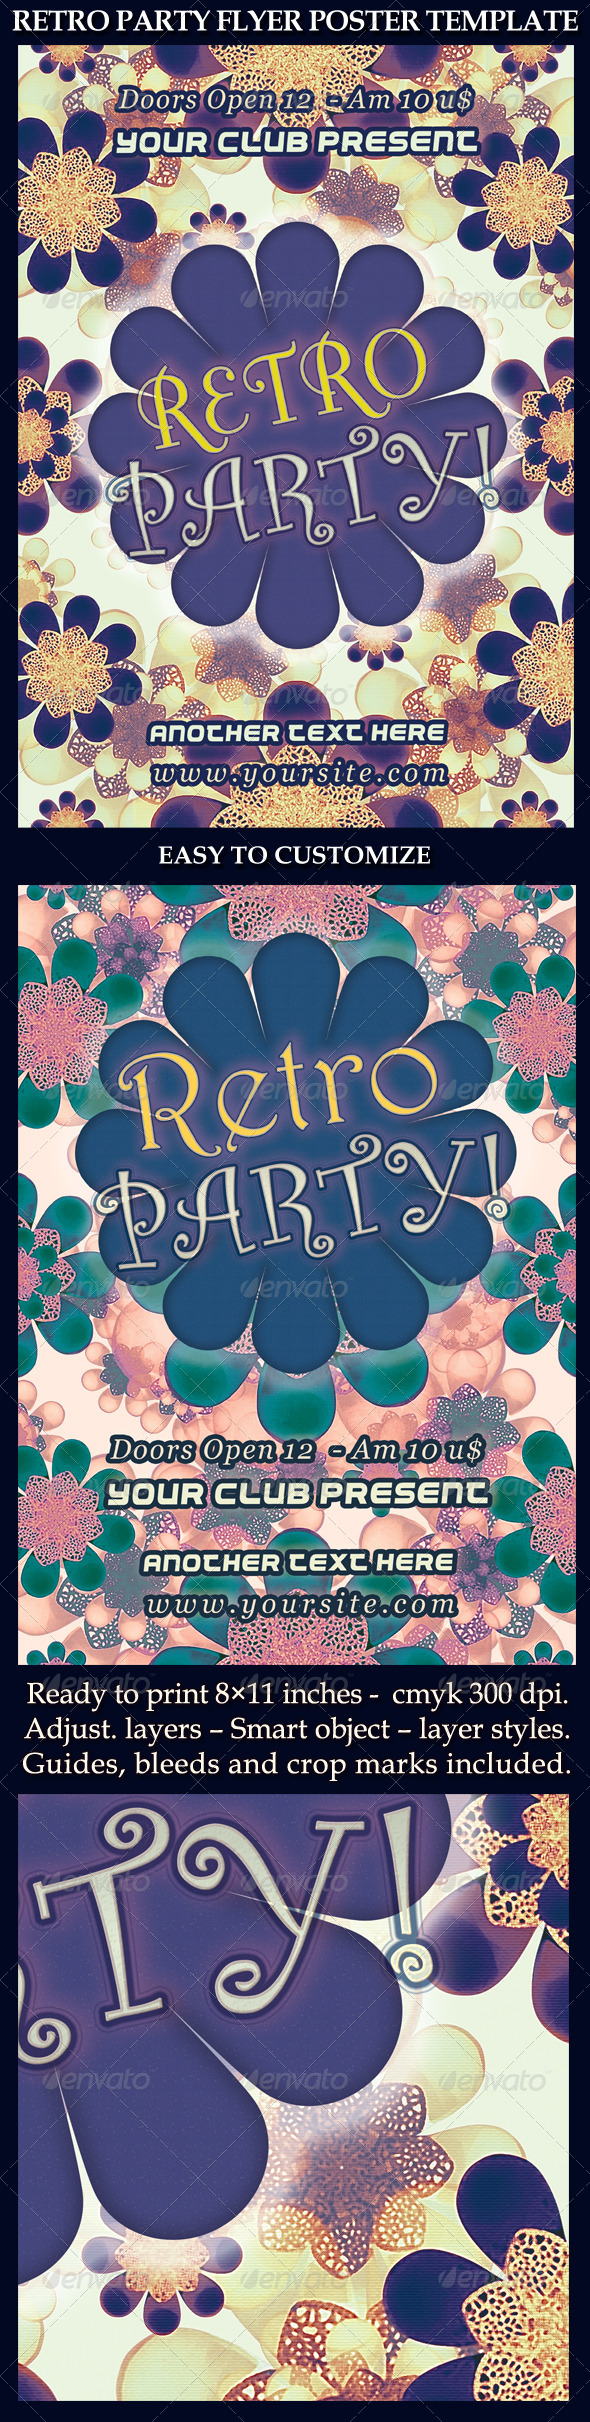 Retro Party Flyer Poster Template - Events Flyers